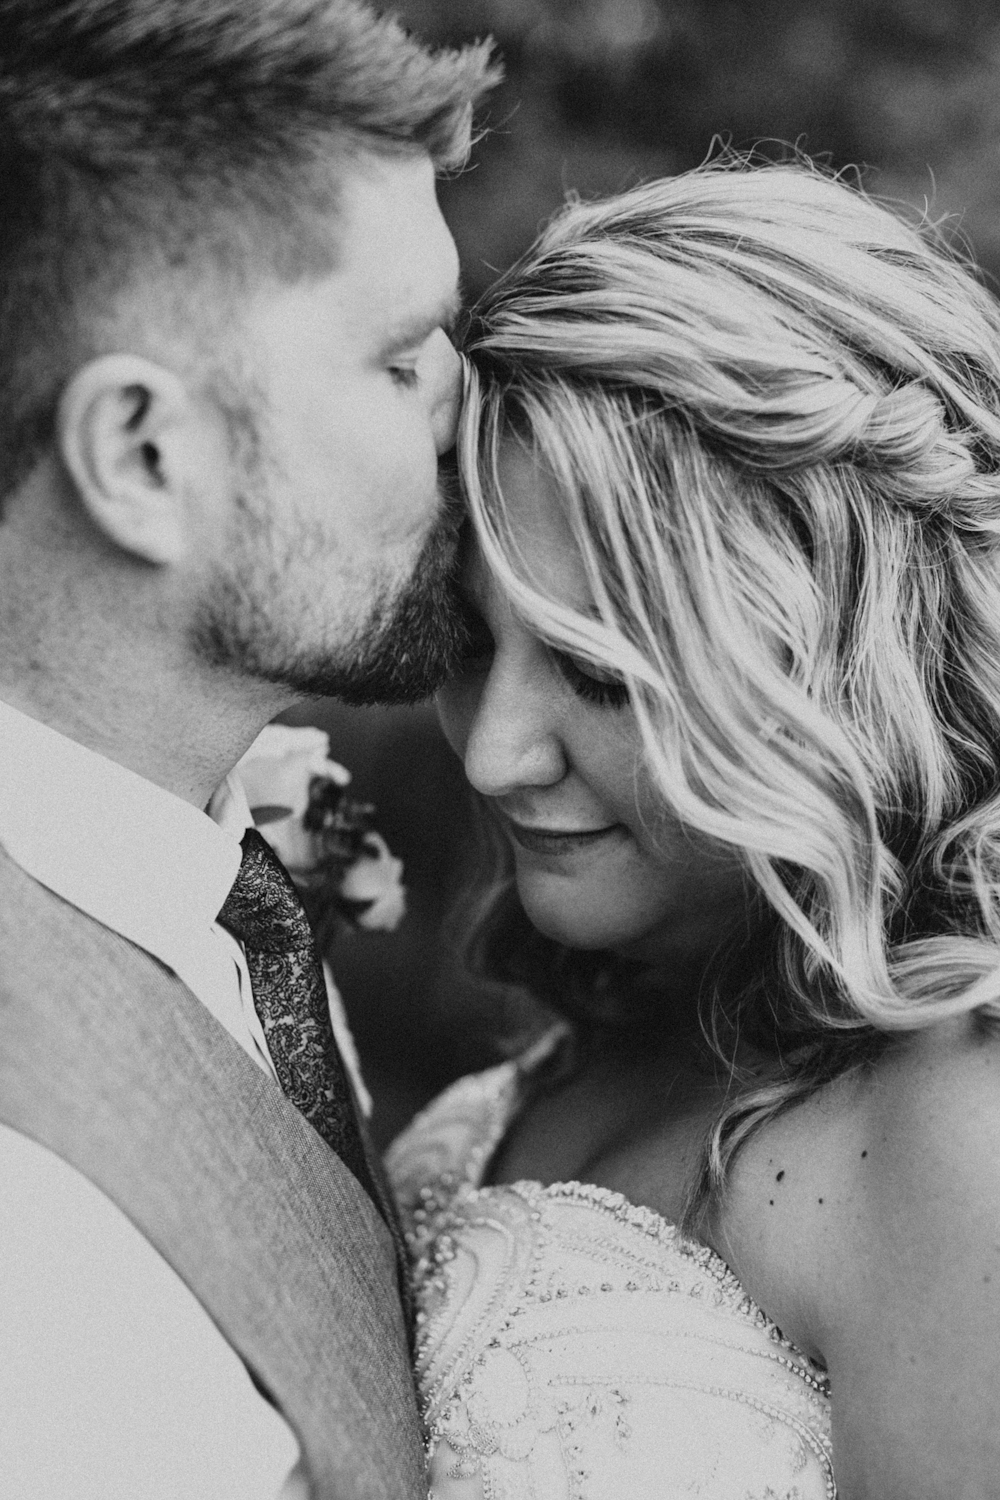 Groom kisses Bride on the forehead in sweet black & white wedding portrait.